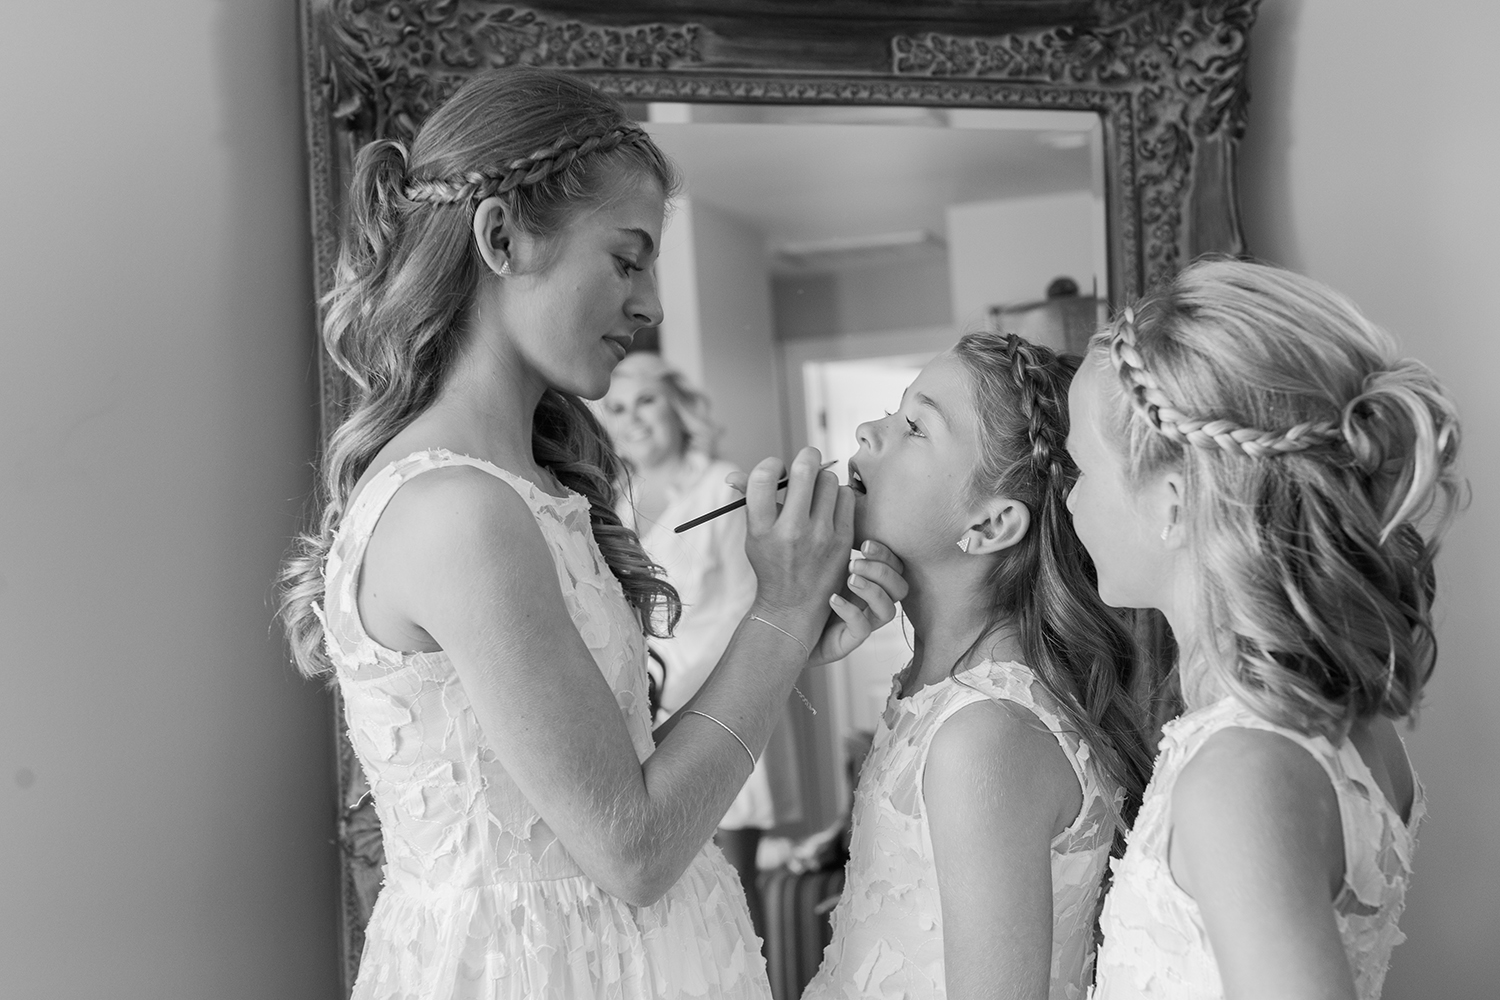 Dena_Rooney_Wedding_Photographer_Birchcreek_Ranch_Livermore_004.jpg